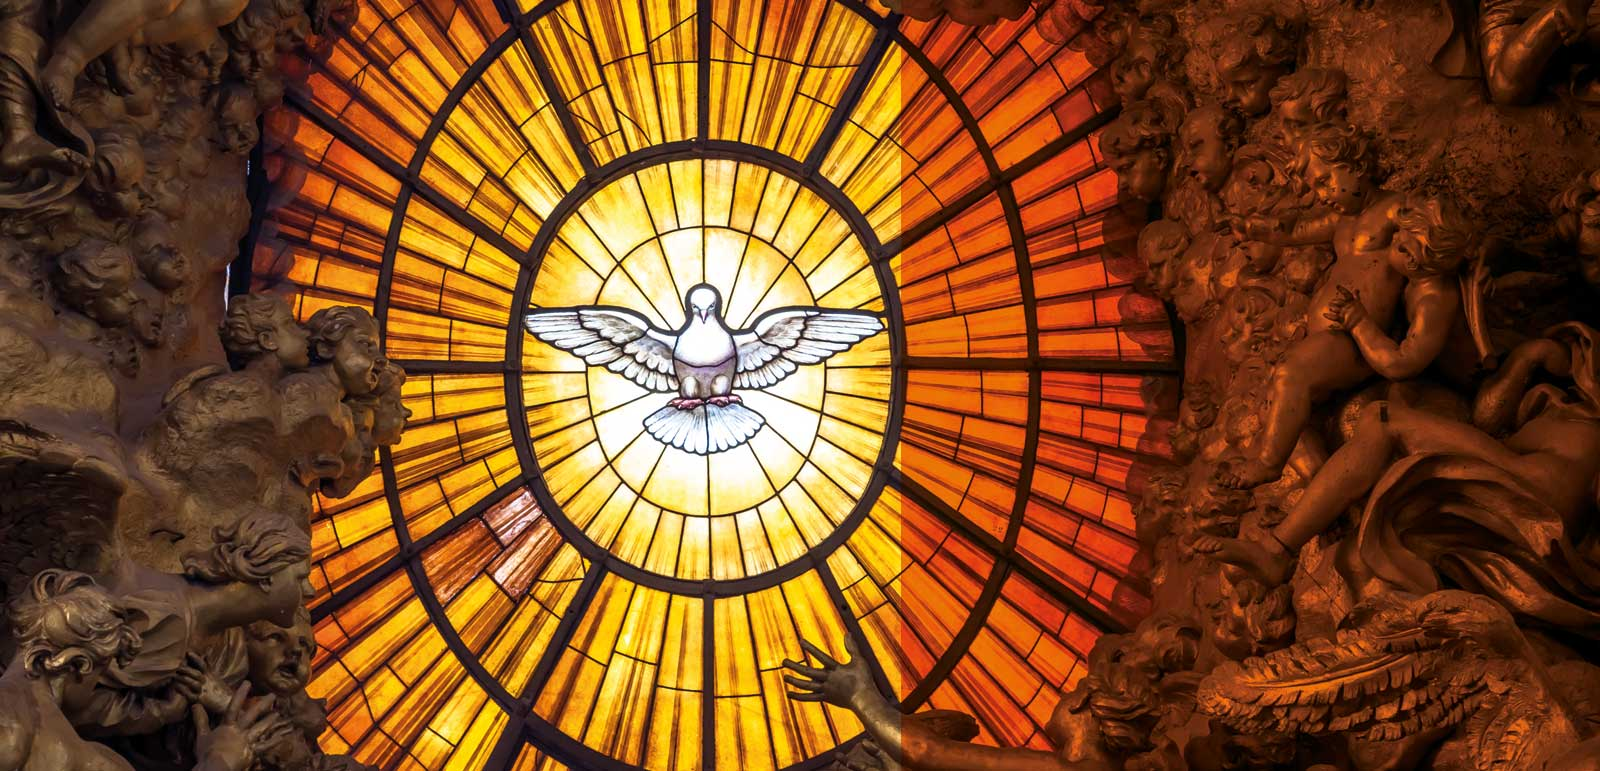 Muisc for Pentecost